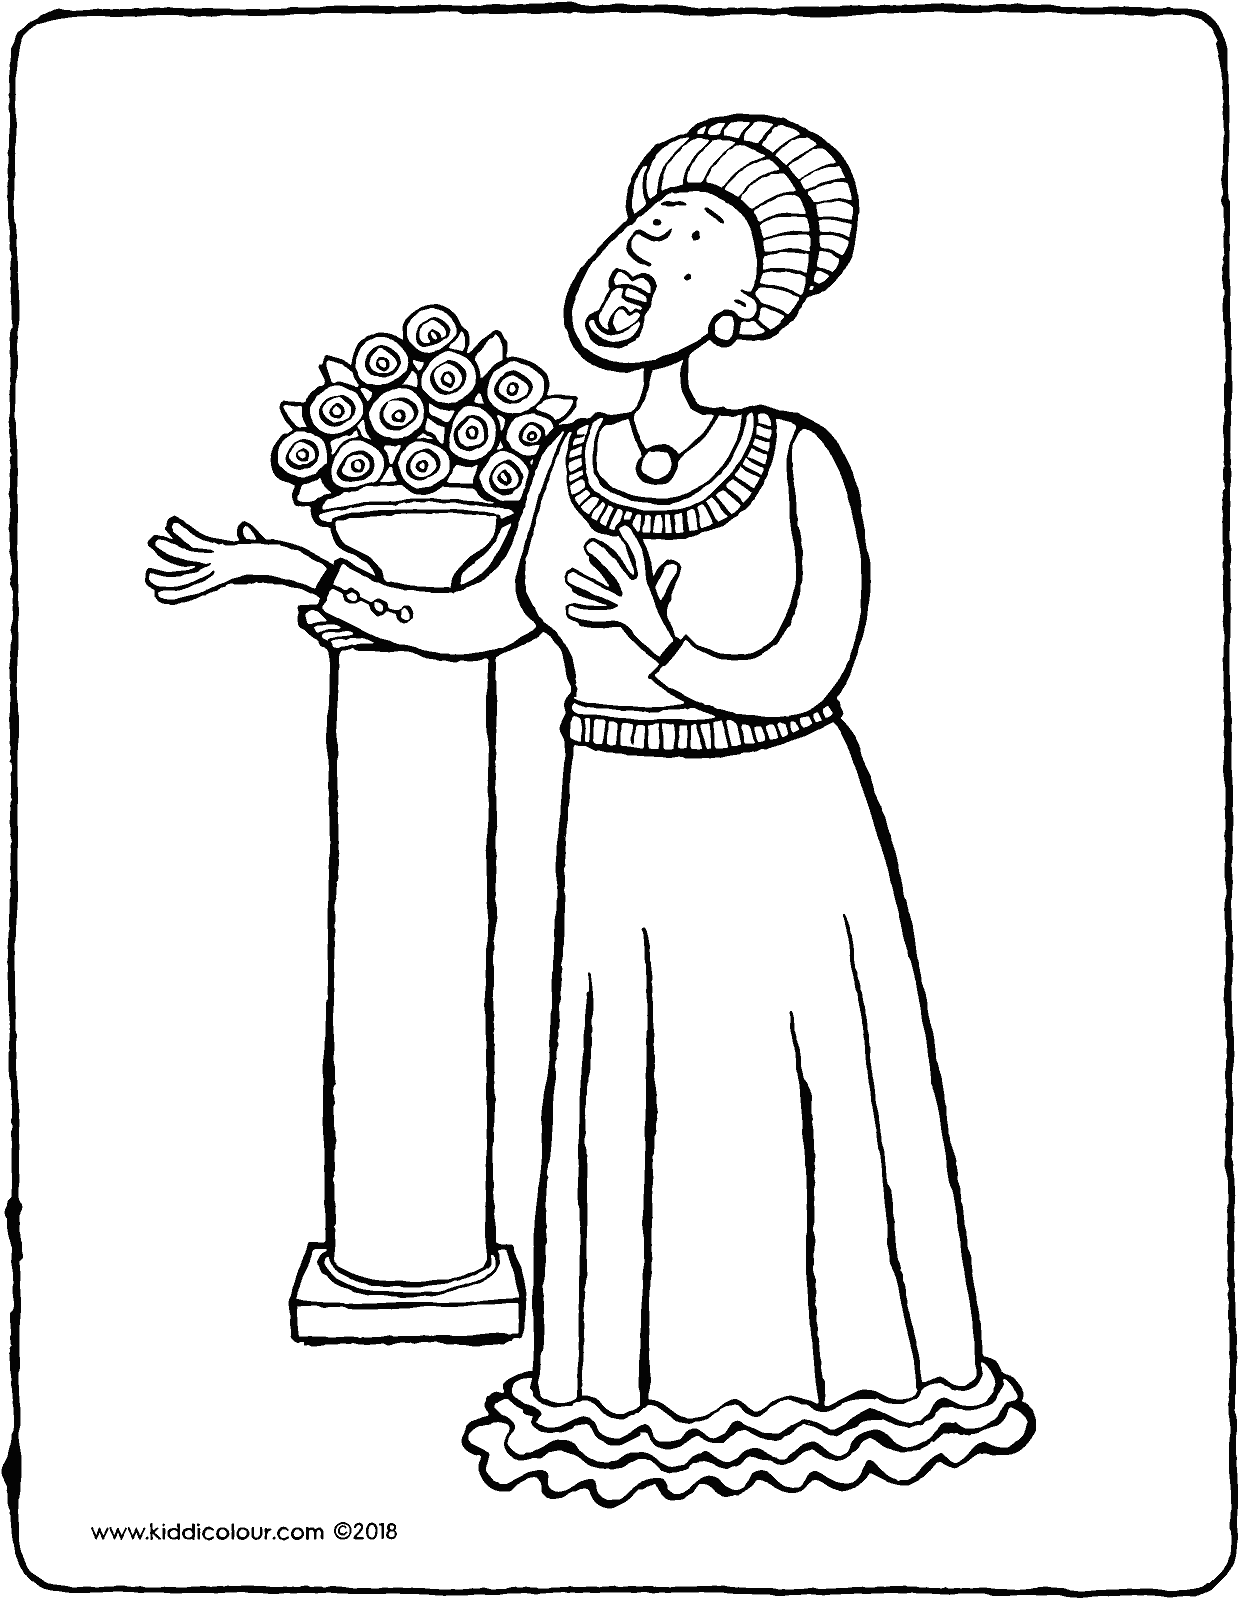 opera singer coloring pages - photo#5